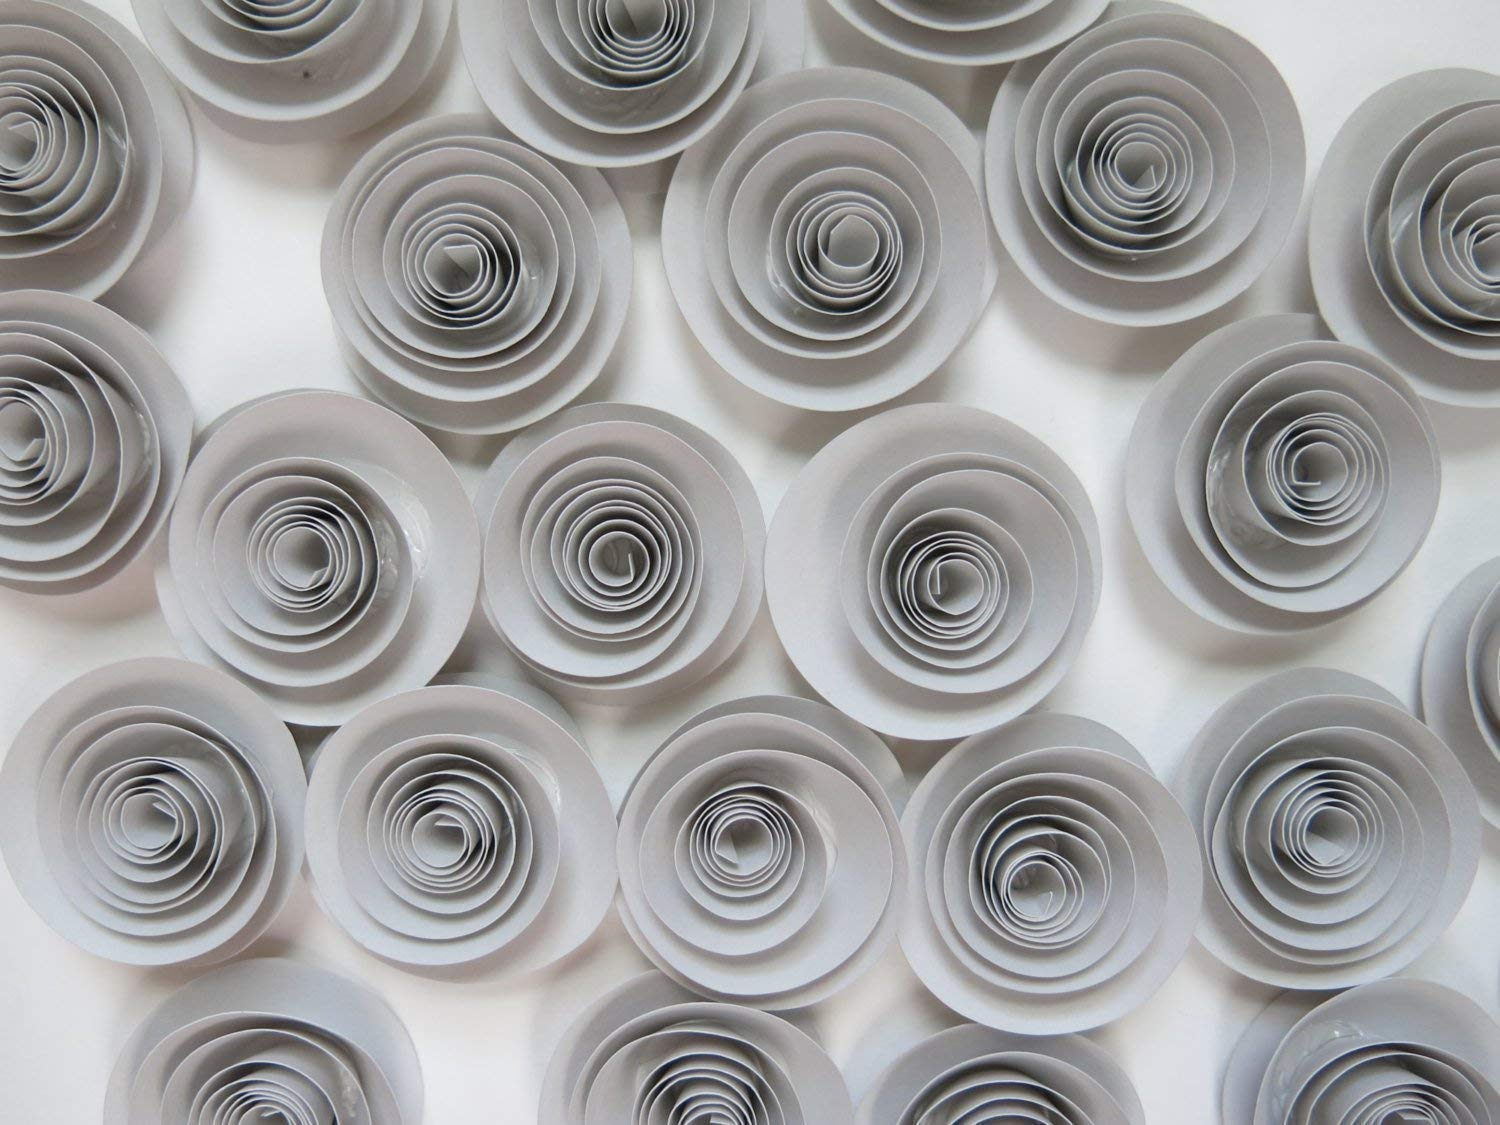 24-Grey-Paper-Flowers-Set-Gray-Wedding-Roses-Loose-Table-Decorations-Birthday-Party-Decor-Modern-Bridal-Shower-Floral-Centerpiece-15-Inch-Rosettes-For-Table-Runner